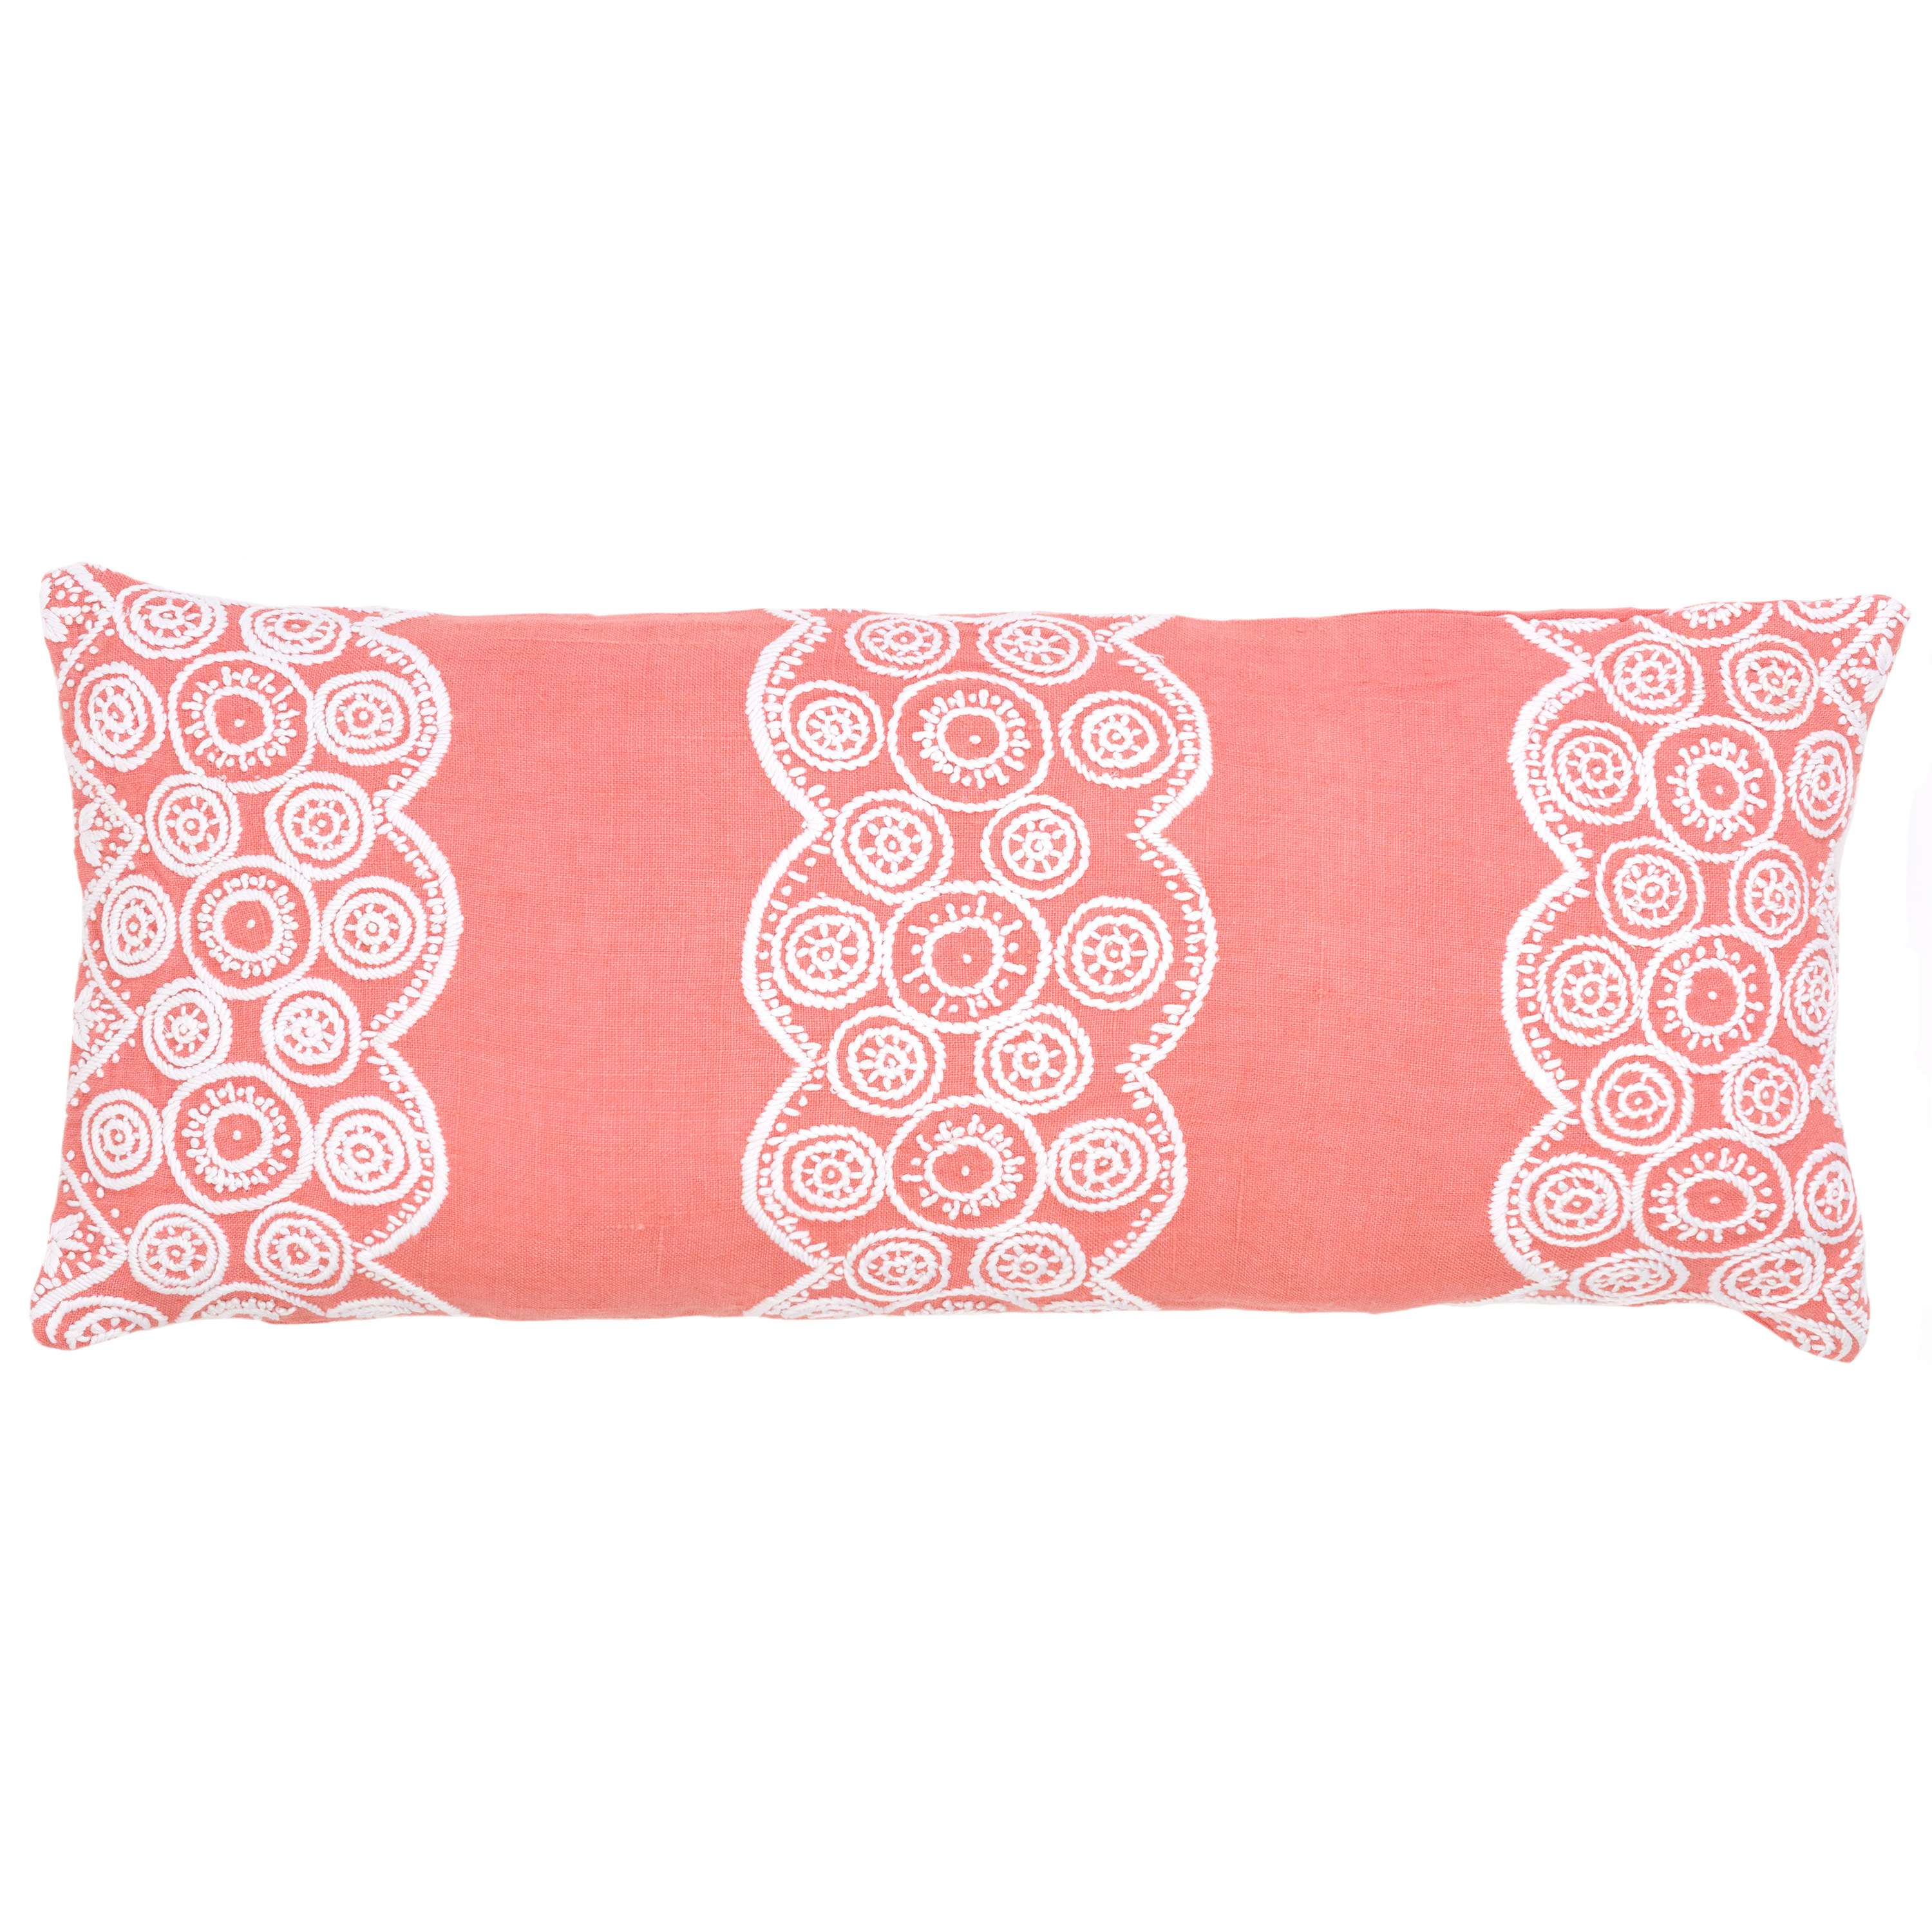 Decorative Pillows Outlet : French Knot Coral Decorative Pillow Double Boudoir The Outlet